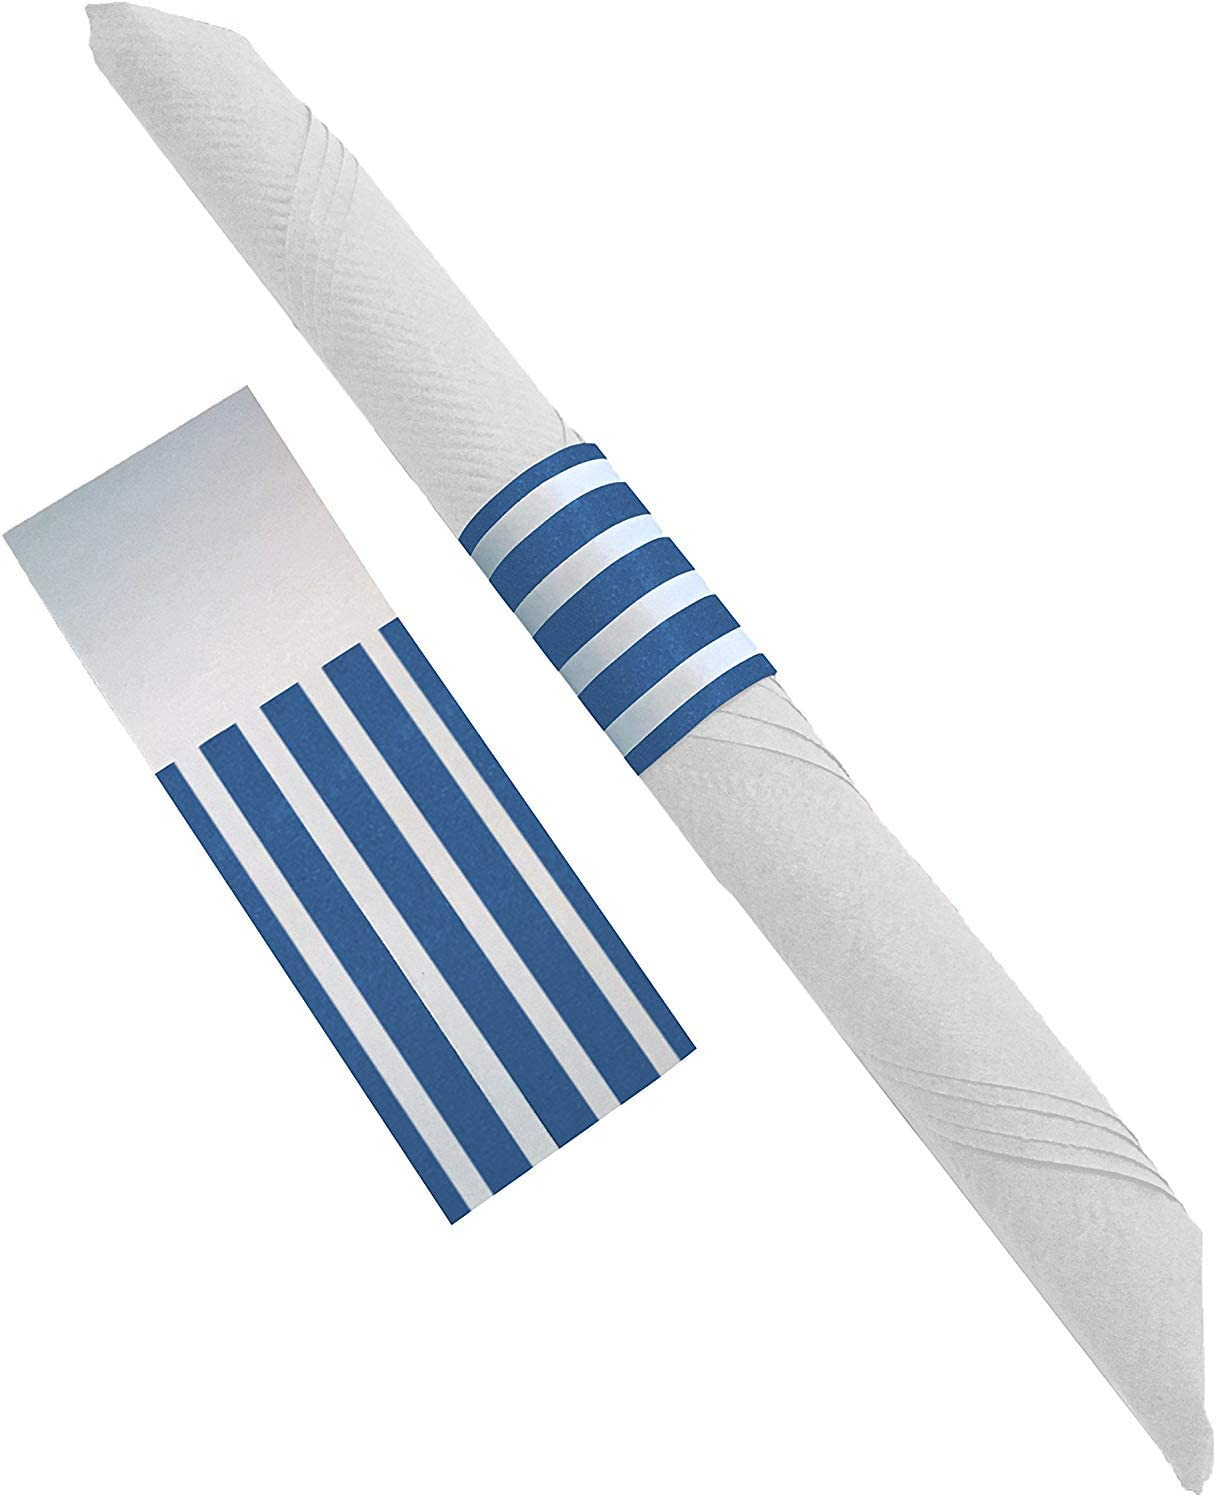 The French Concept Decorative Self-Adhesive Paper Napkin Bands (Blue and White, 20)